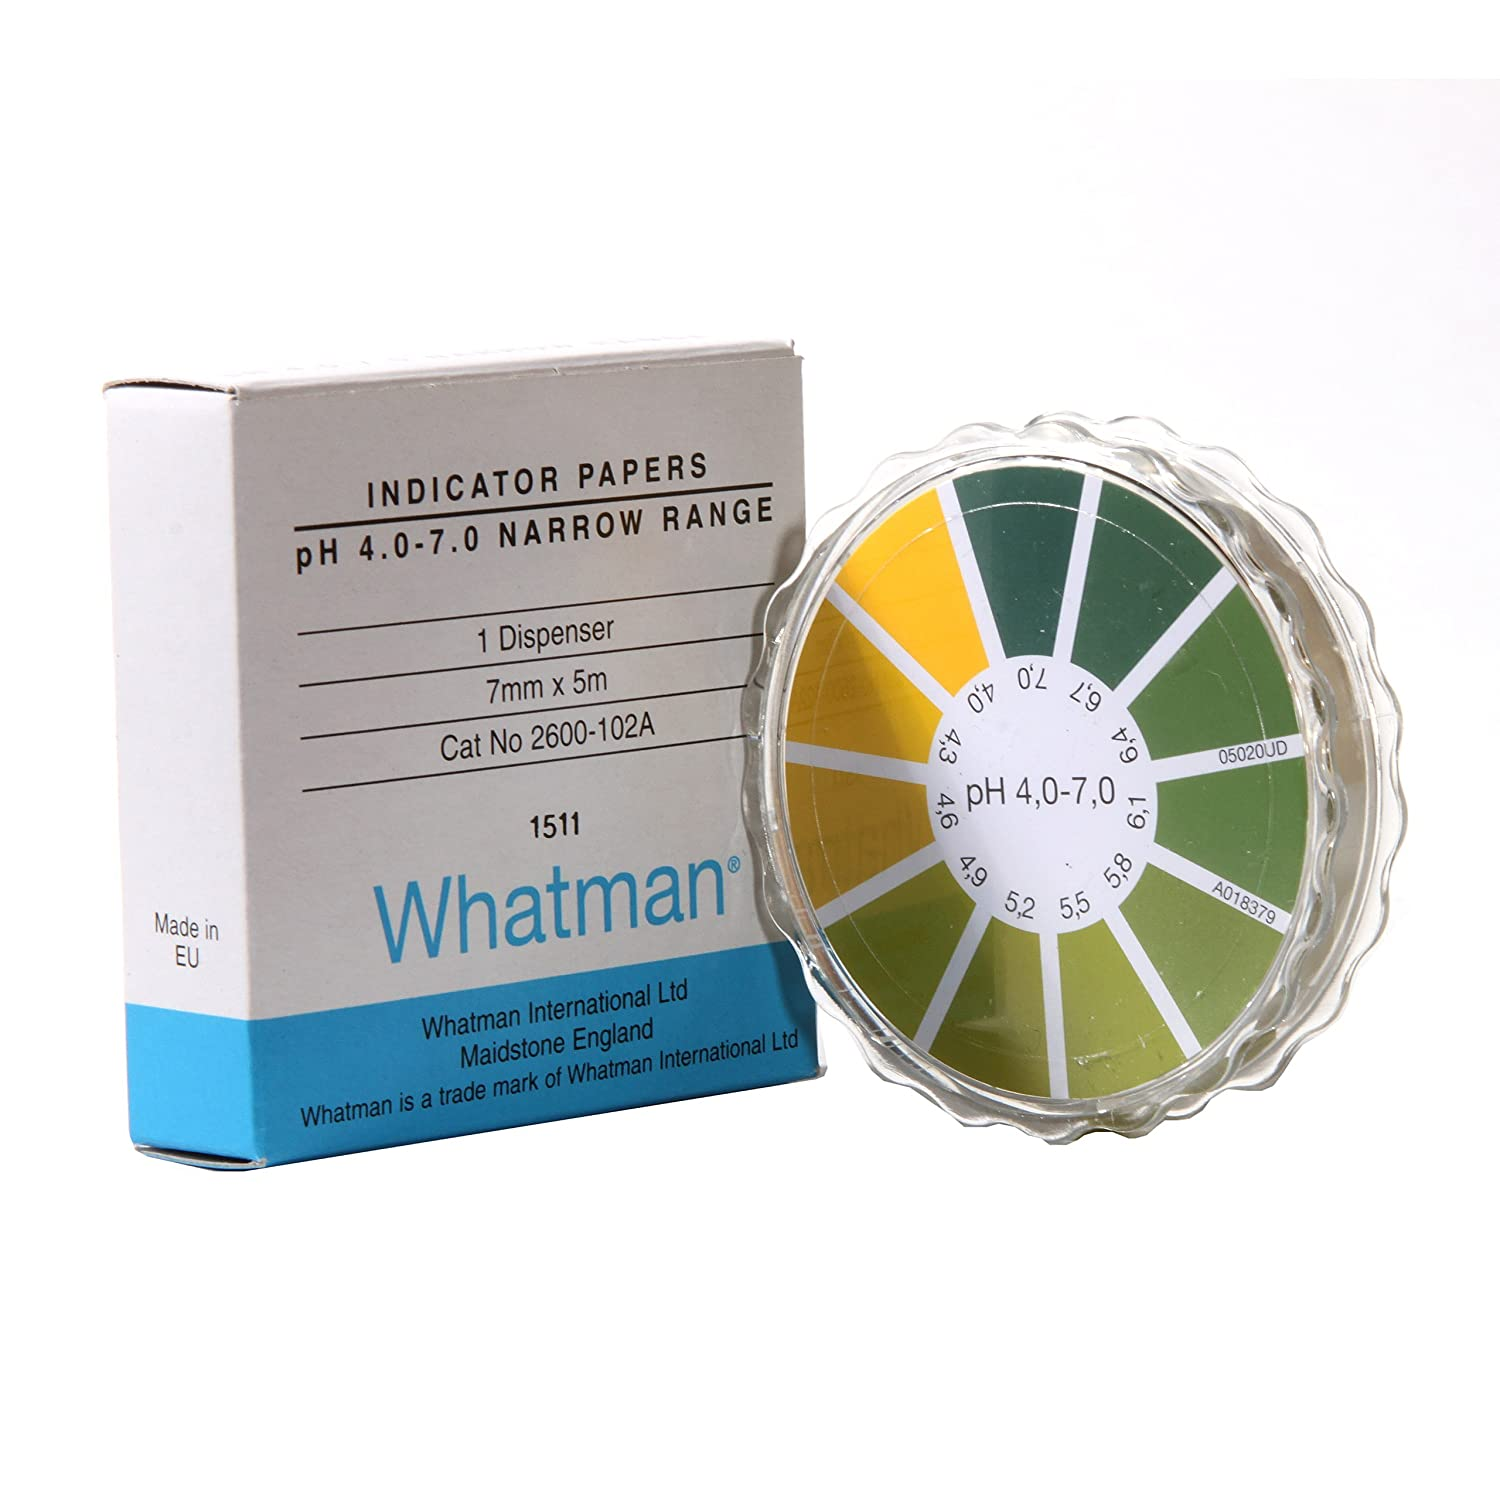 Whatman 2600103A Standard Narrow Reel pH Indicator, 6.4 to 8.0 Range 7 mm x 5 m and Test Papers Dispenser GE Healthcare